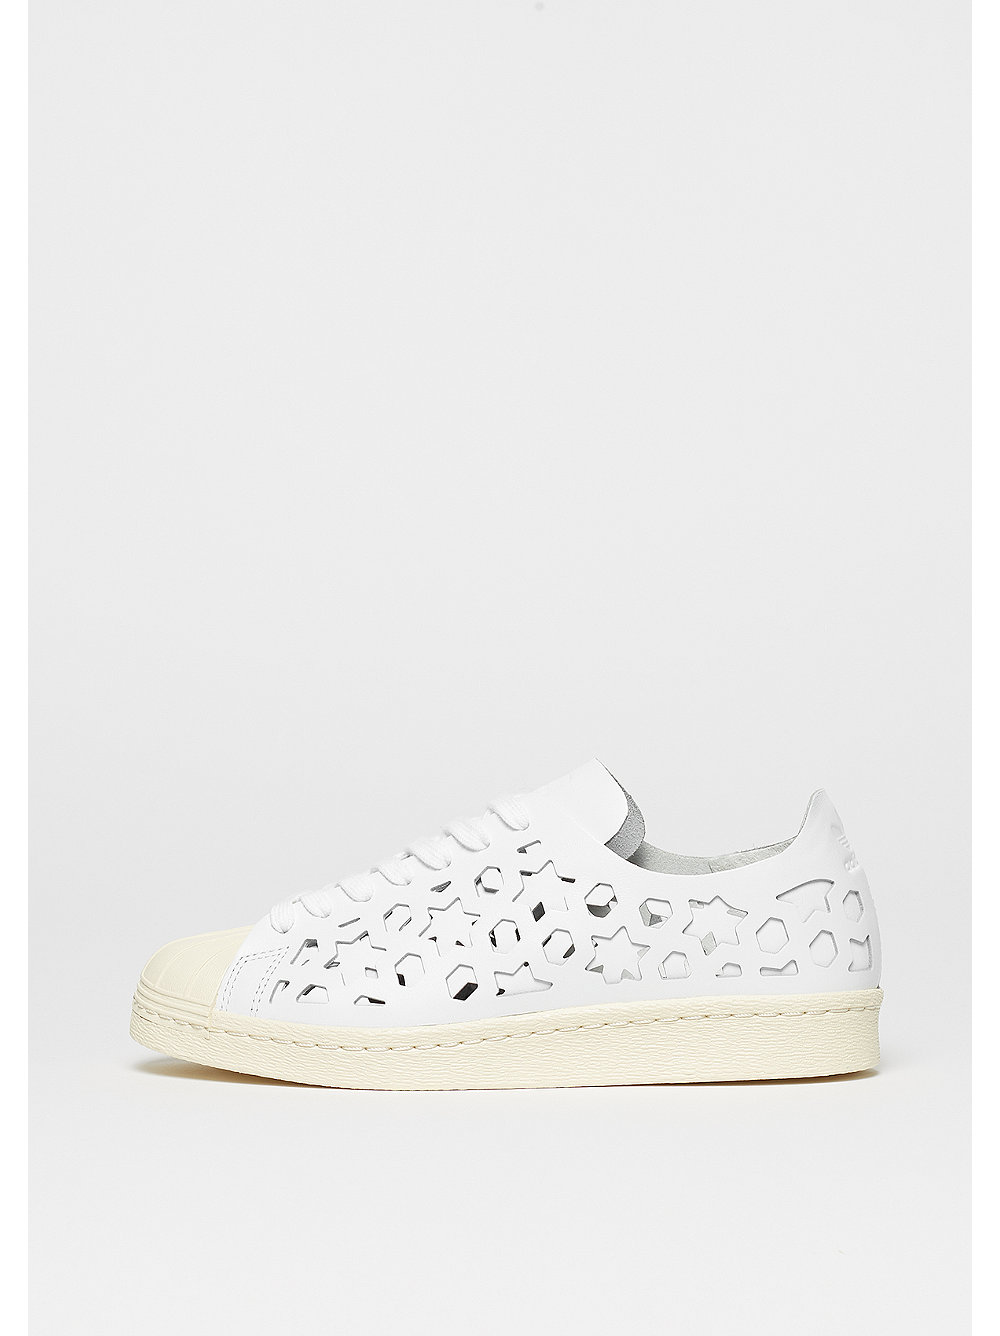 adidas Superstar 80s Cut Out ftwr white-ftwr white-cream white